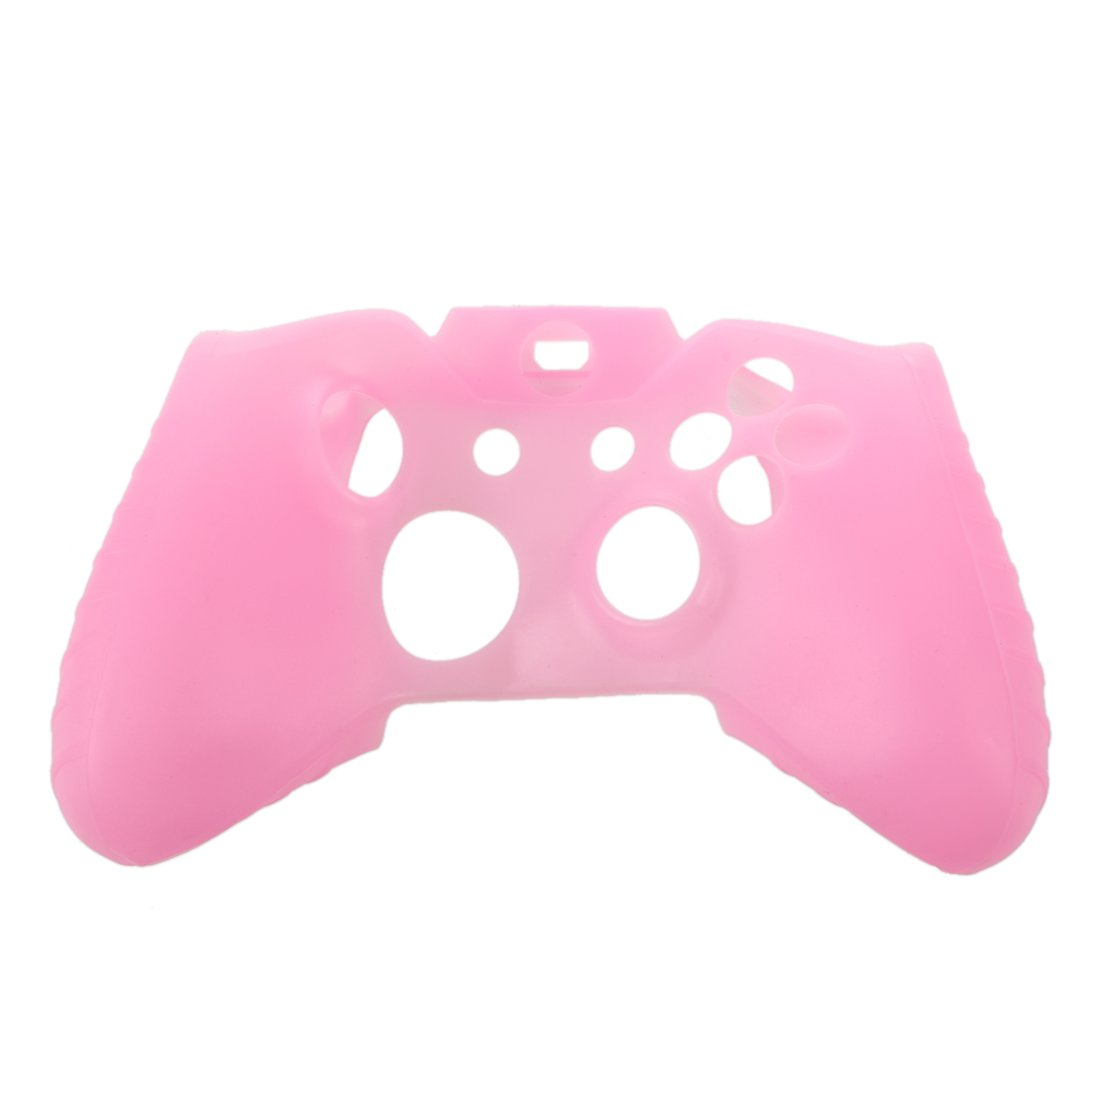 SODIAL(R) Soft Silicone Gel Protective Skin Cover Case for XBOX ONE Controller Pink